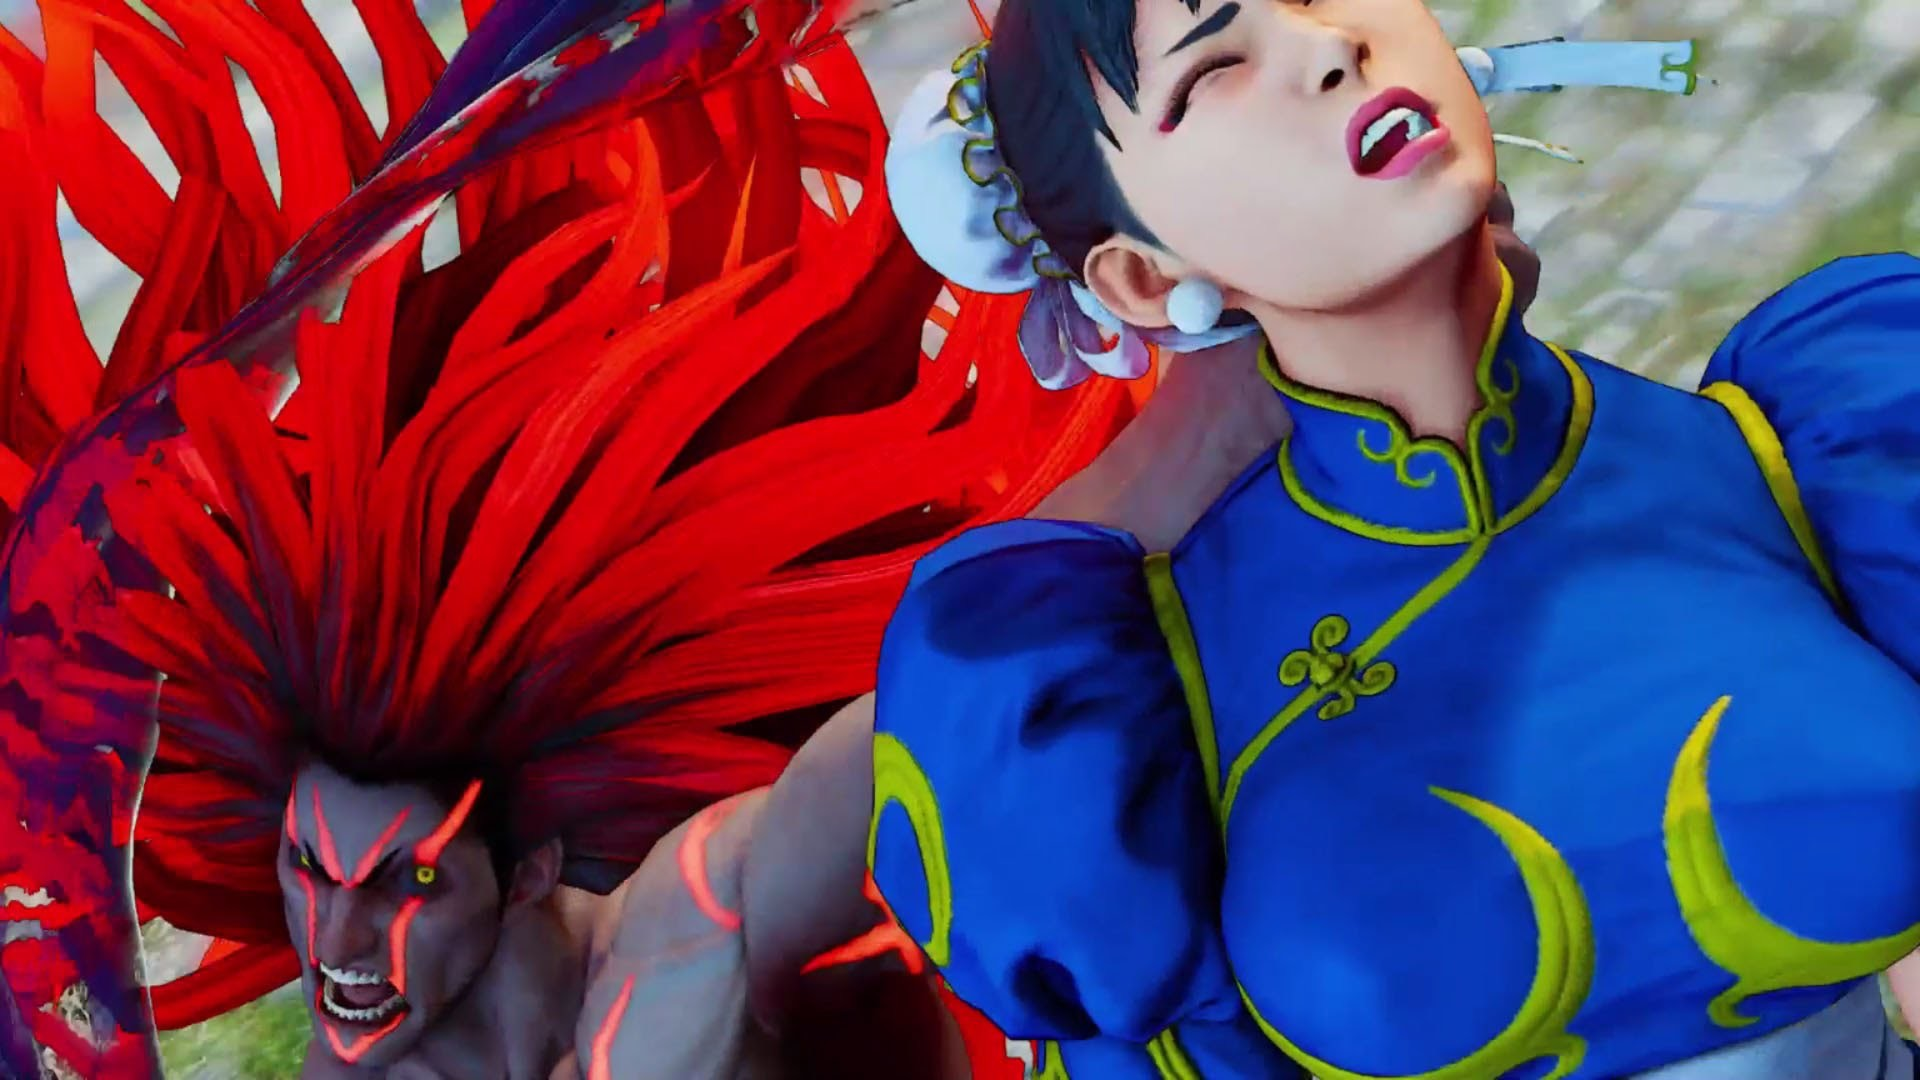 [PS4] Street Fighter 5: Chun-Li (-HORDE) vs Necalli (TKNinja)【HD 】 – YouTube